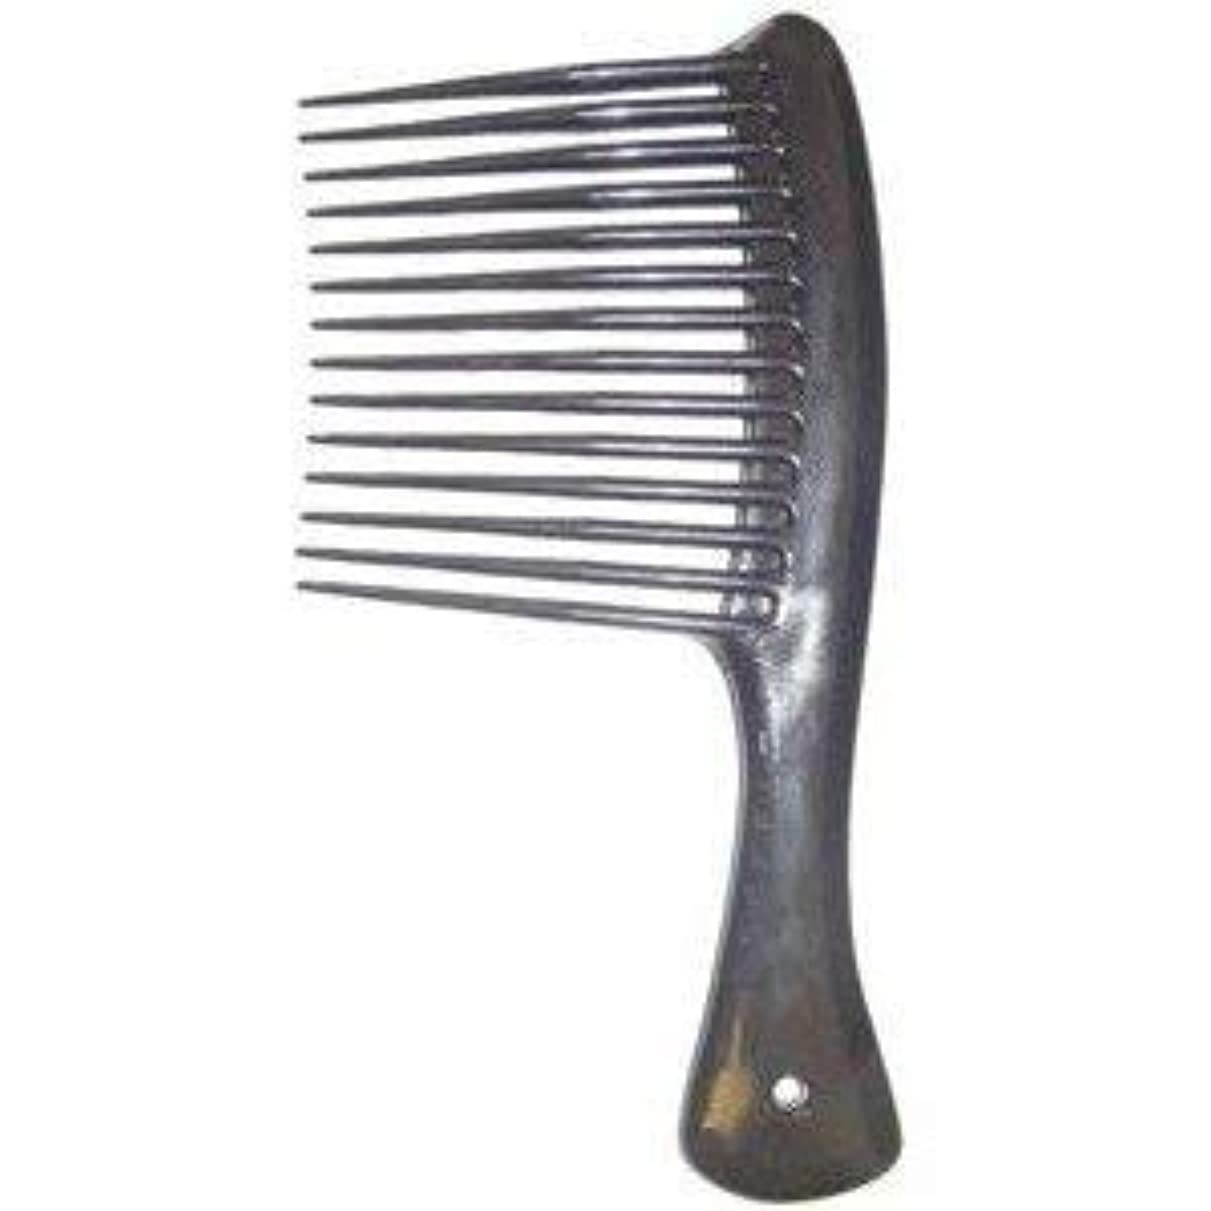 Large Tooth Shampoo Detangling Comb Rack Hair Comb (Black) [並行輸入品]